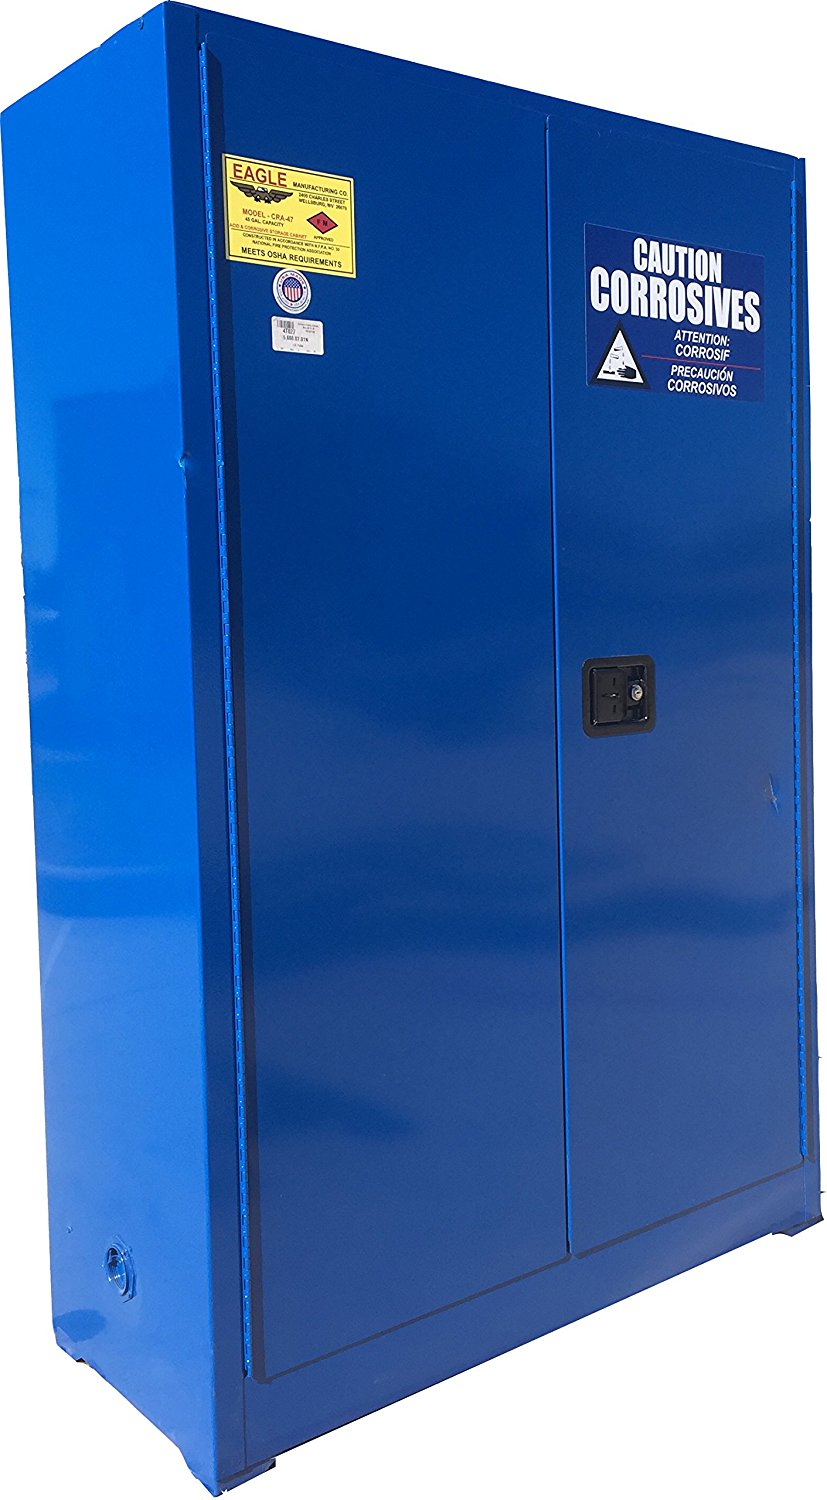 "Eagle CRA-47 Safety Cabinet for Corrosive Liquids, 2 Door Manual Close, 45 gallon, 65""Height, 43""Width, 18""Depth, Steel, Blue"